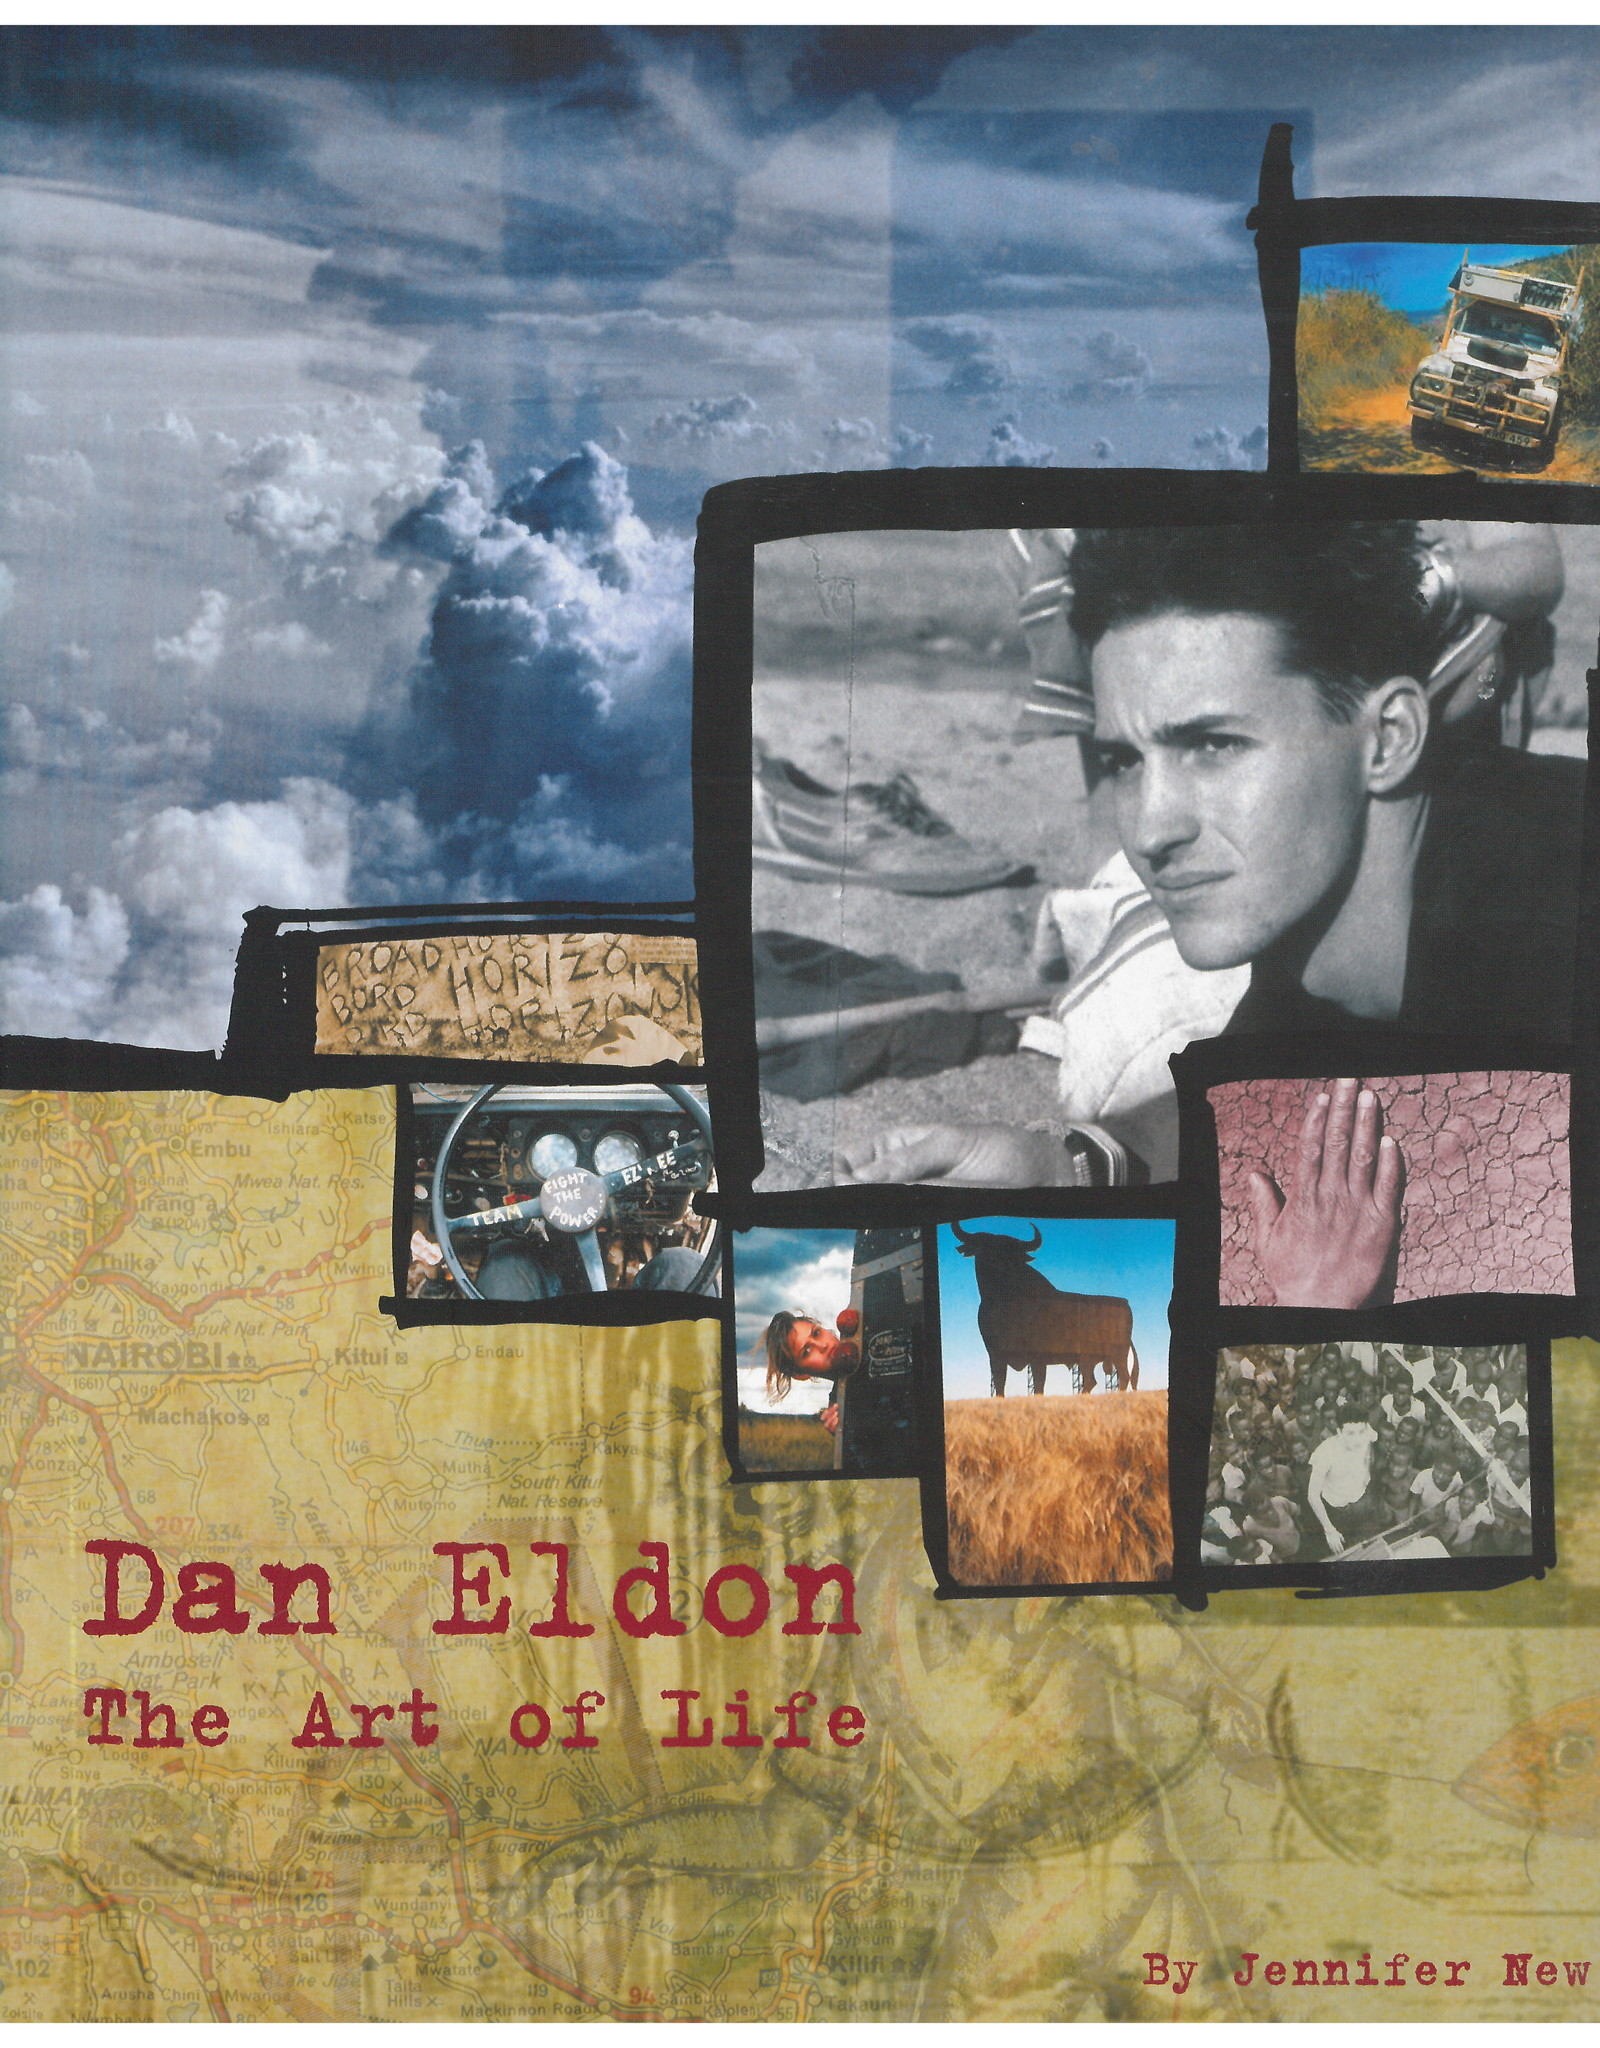 The Art of Life / Dan Eldon